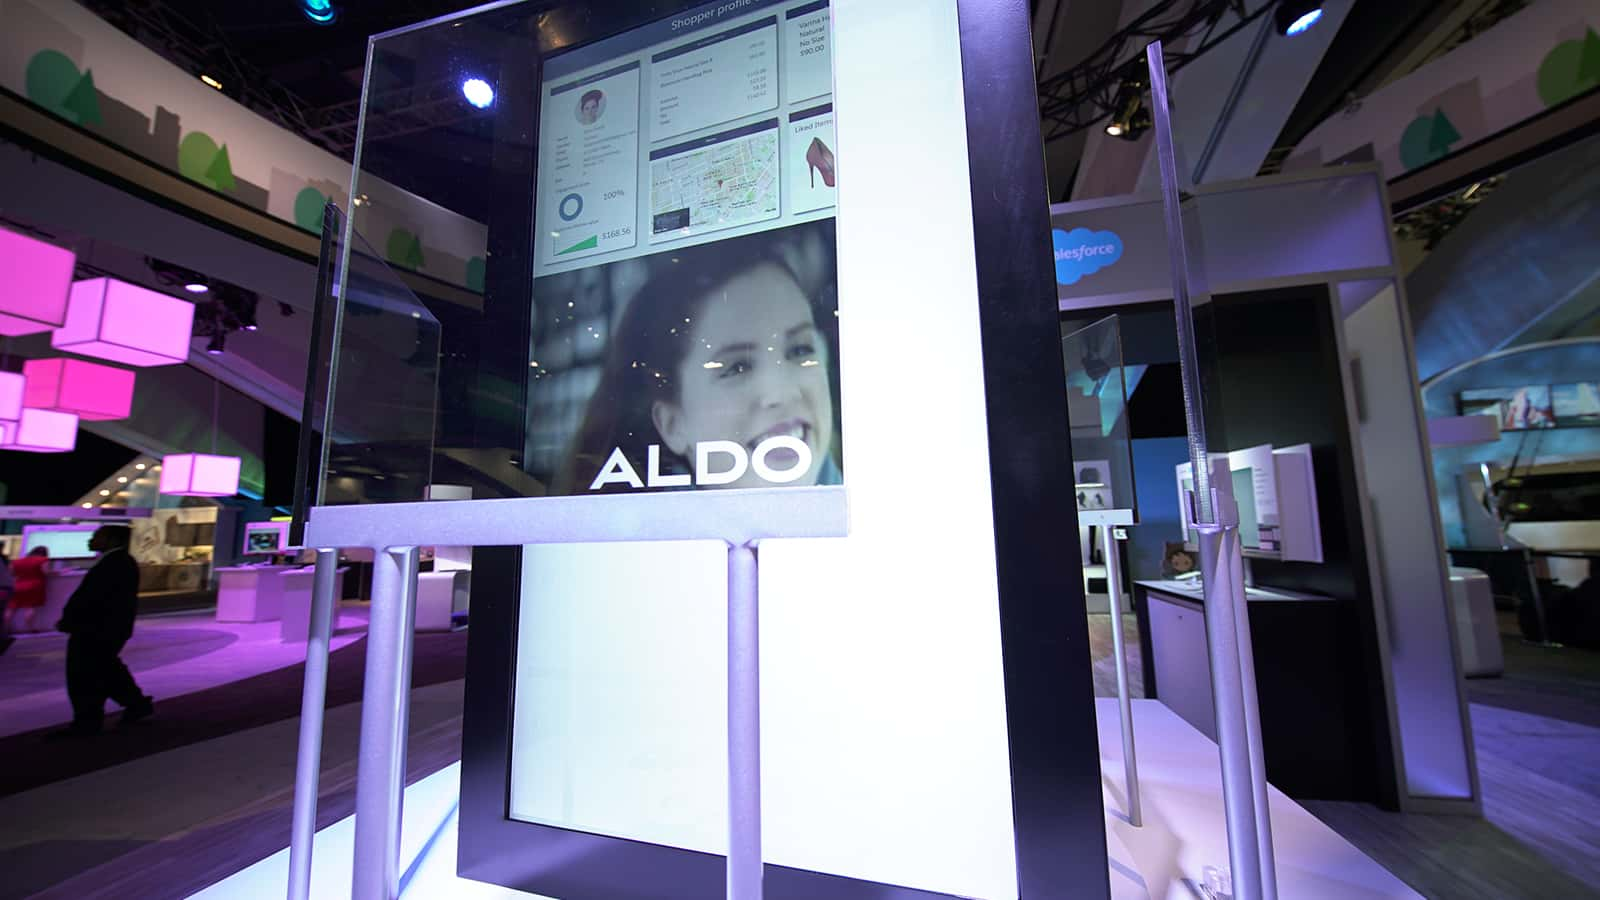 A video screen from the Aldo 360 View digital retail experience at Salesforce Dreamforce 2016.